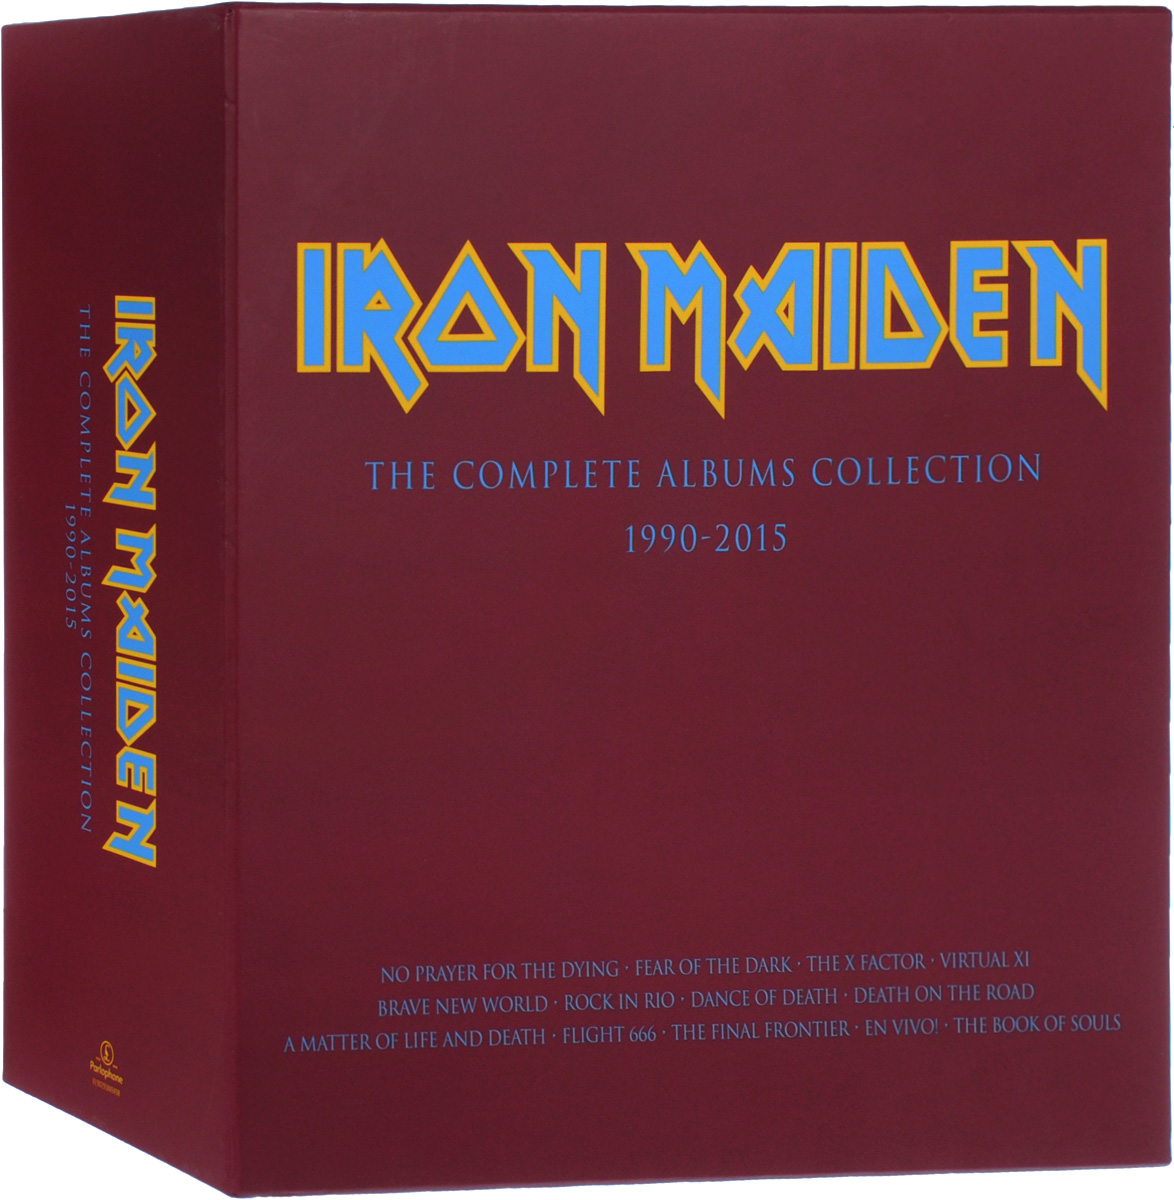 Iron Maiden Iron Maiden. The Complete Albums Collection 1990-2015 (3 LP)